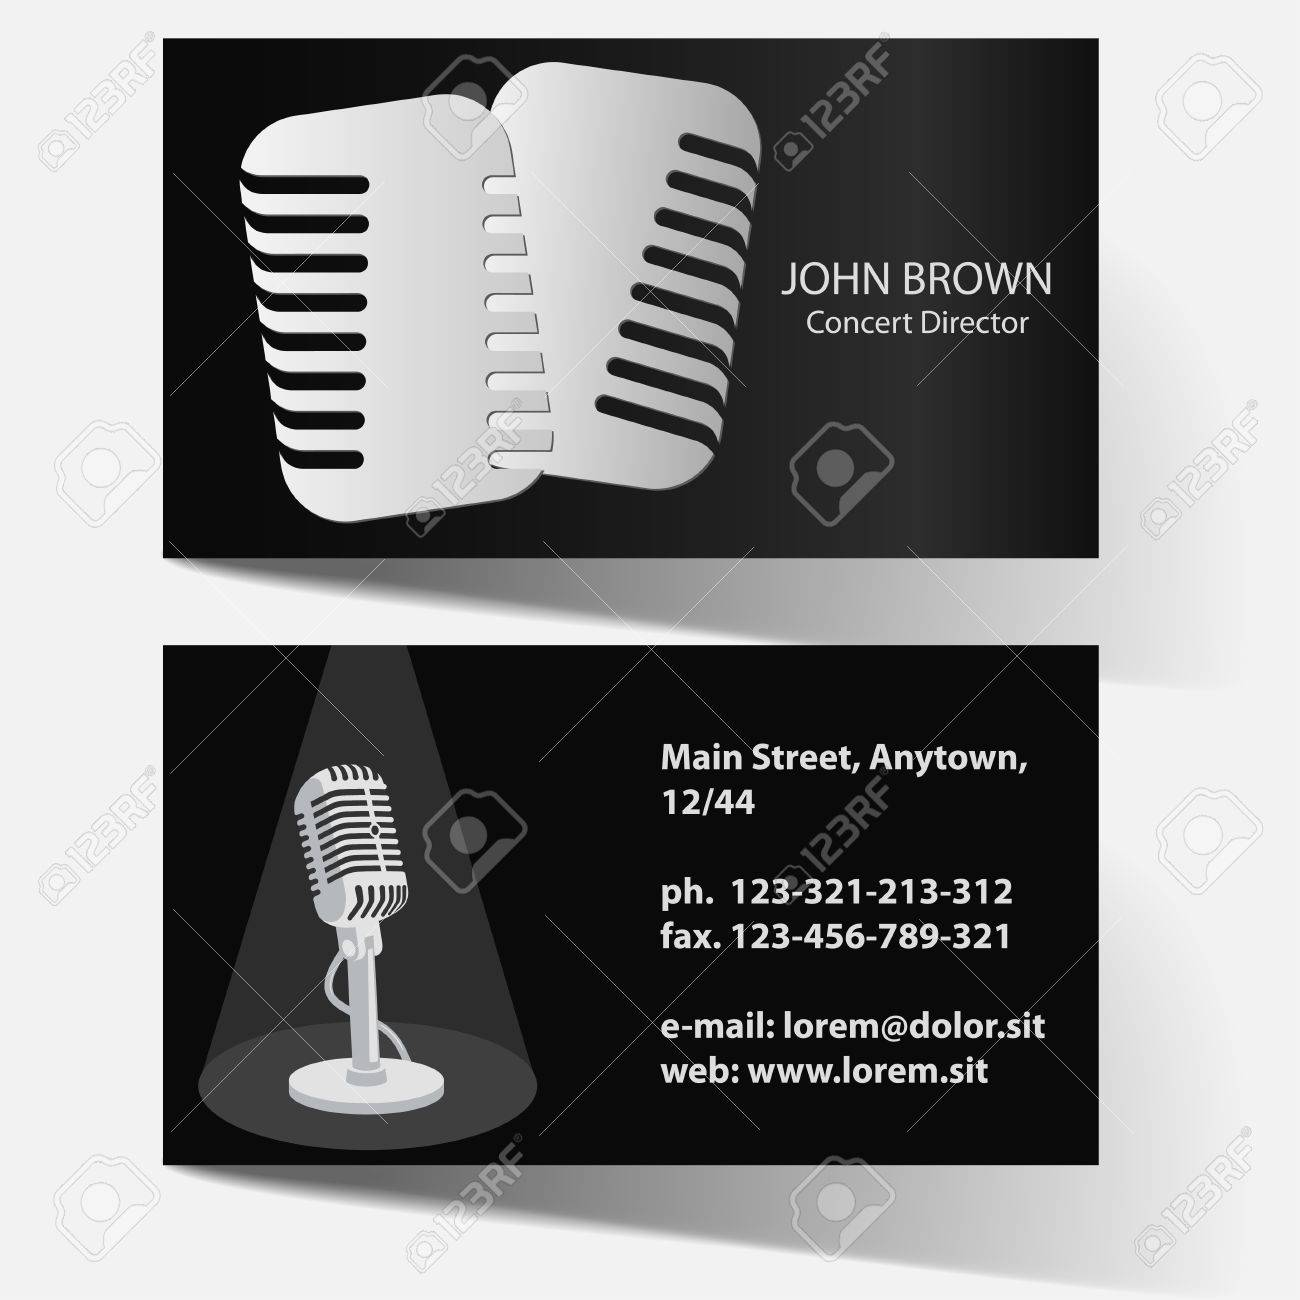 Artiste business card with vintage microphone actor of theater artiste business card with vintage microphone actor of theater concert director radio presenter magicingreecefo Choice Image